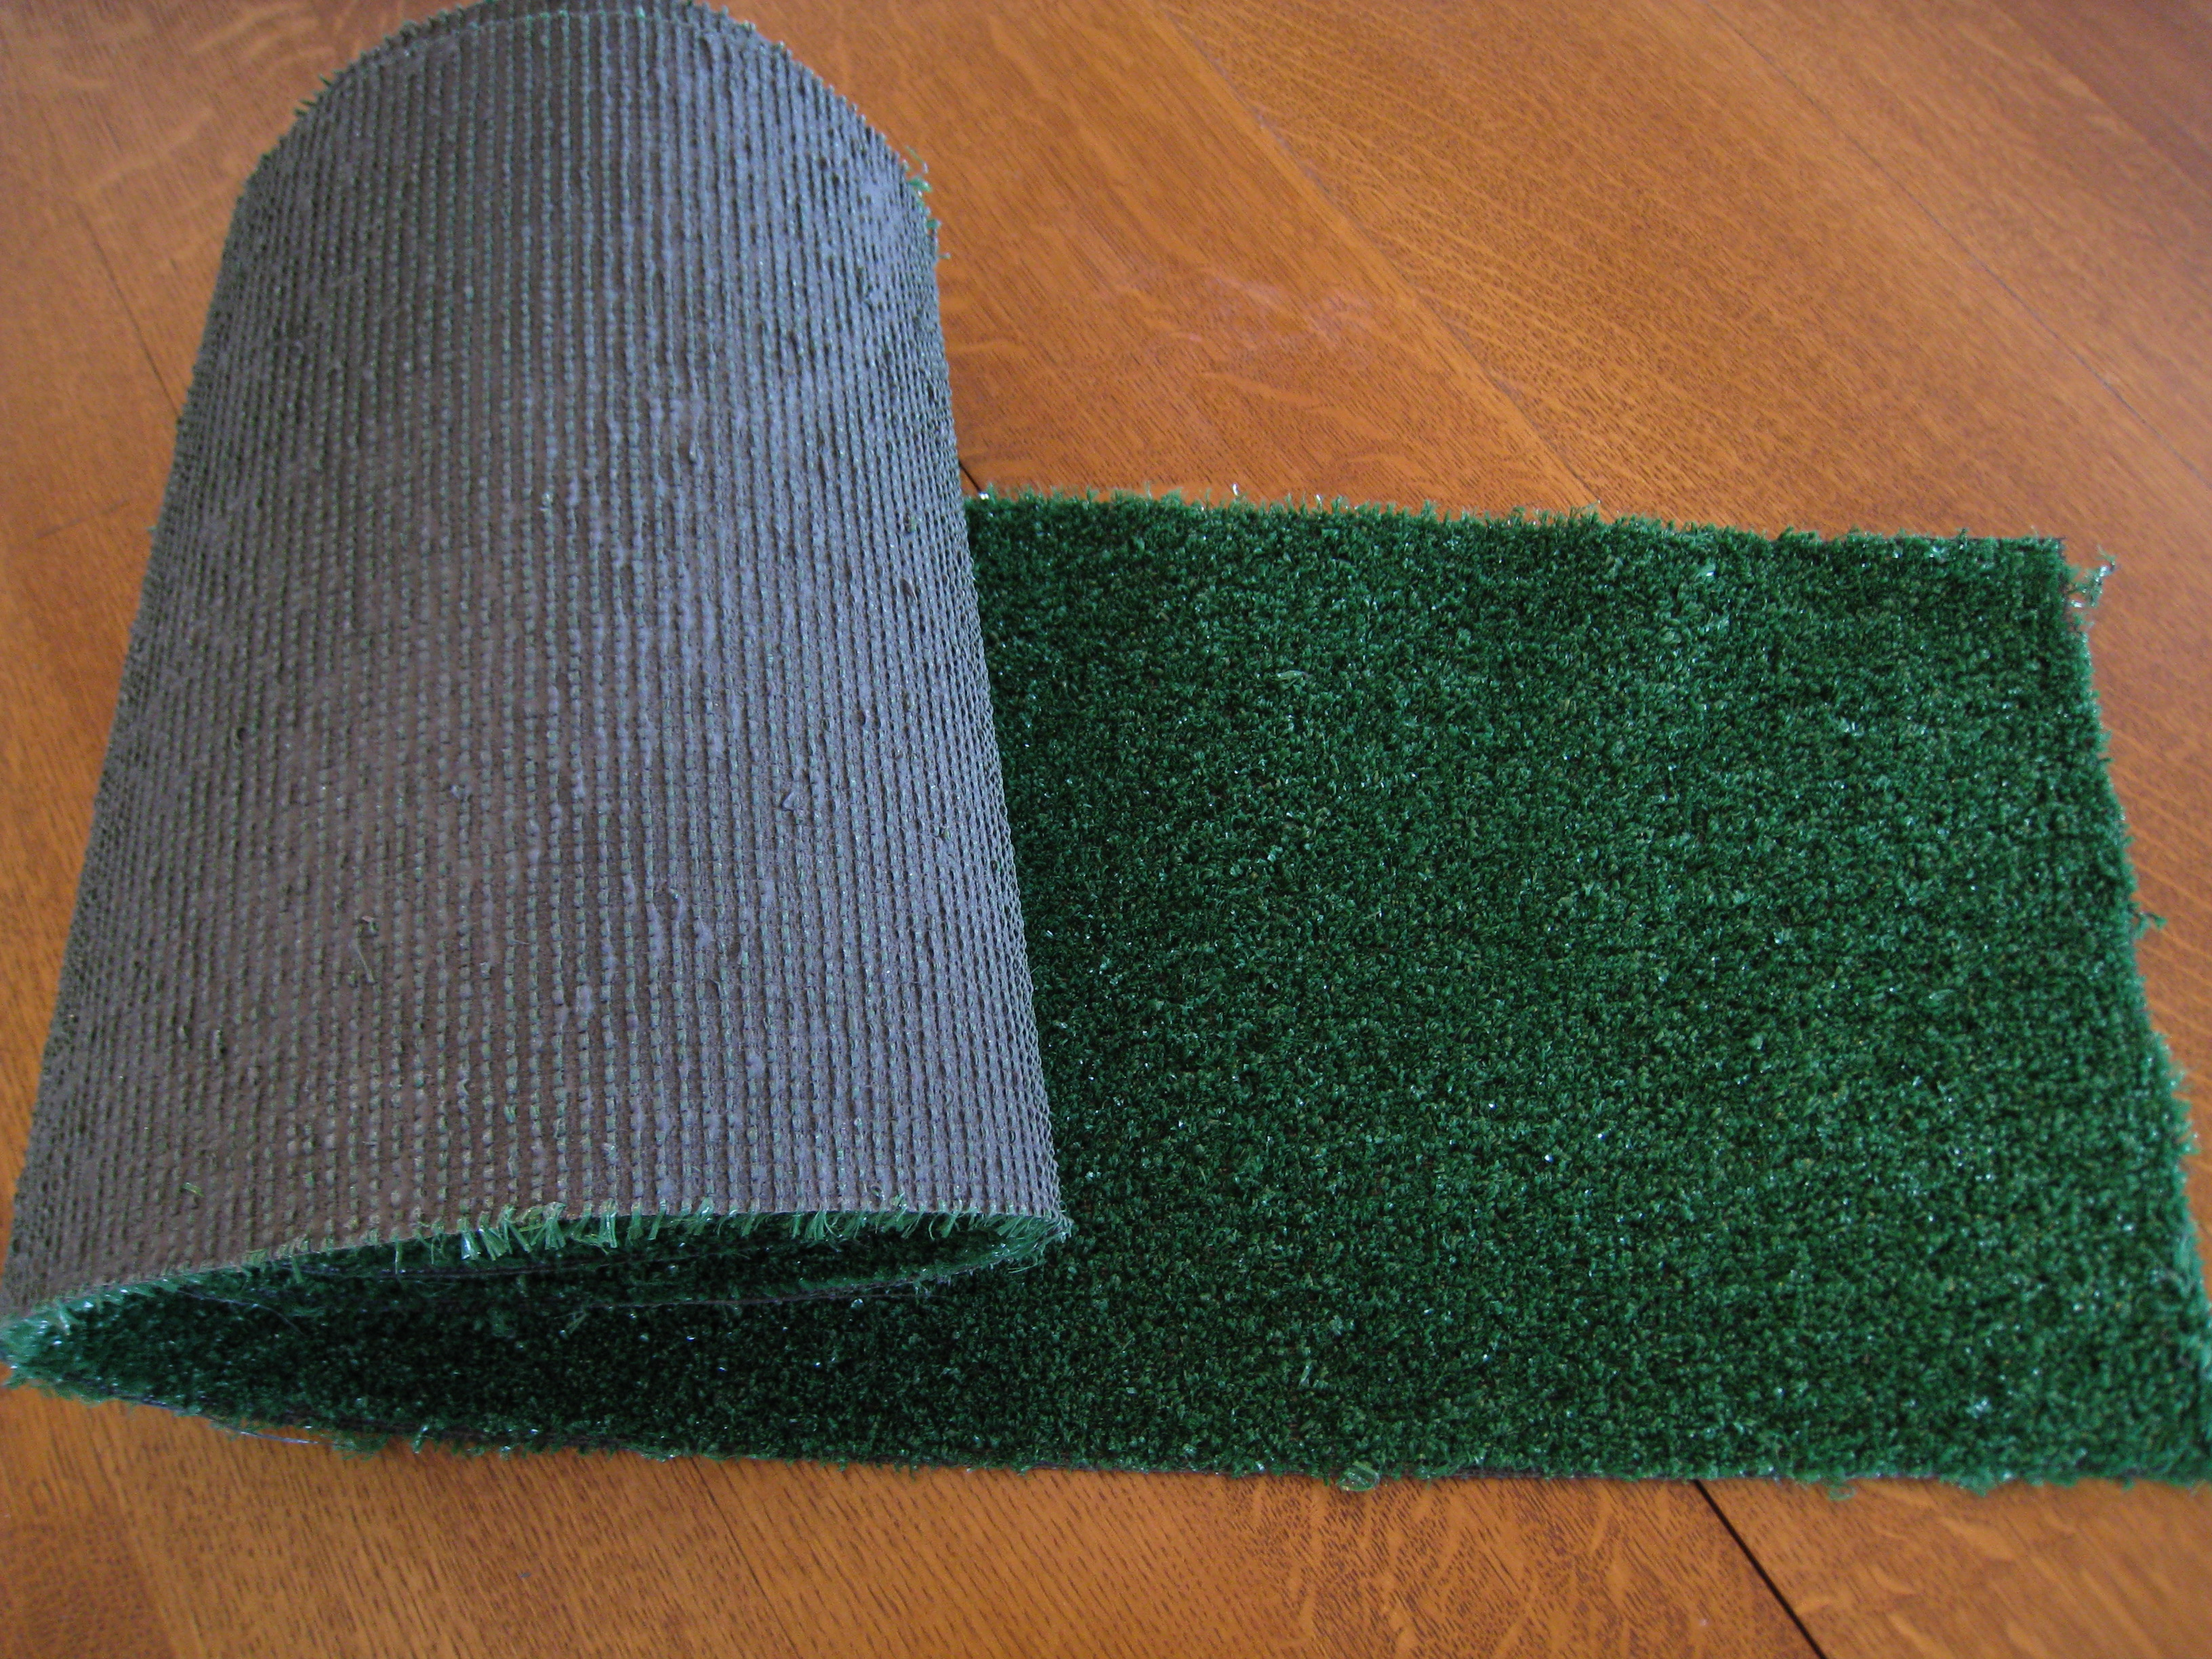 YOu can get pieces of fake grass at any home suppy store